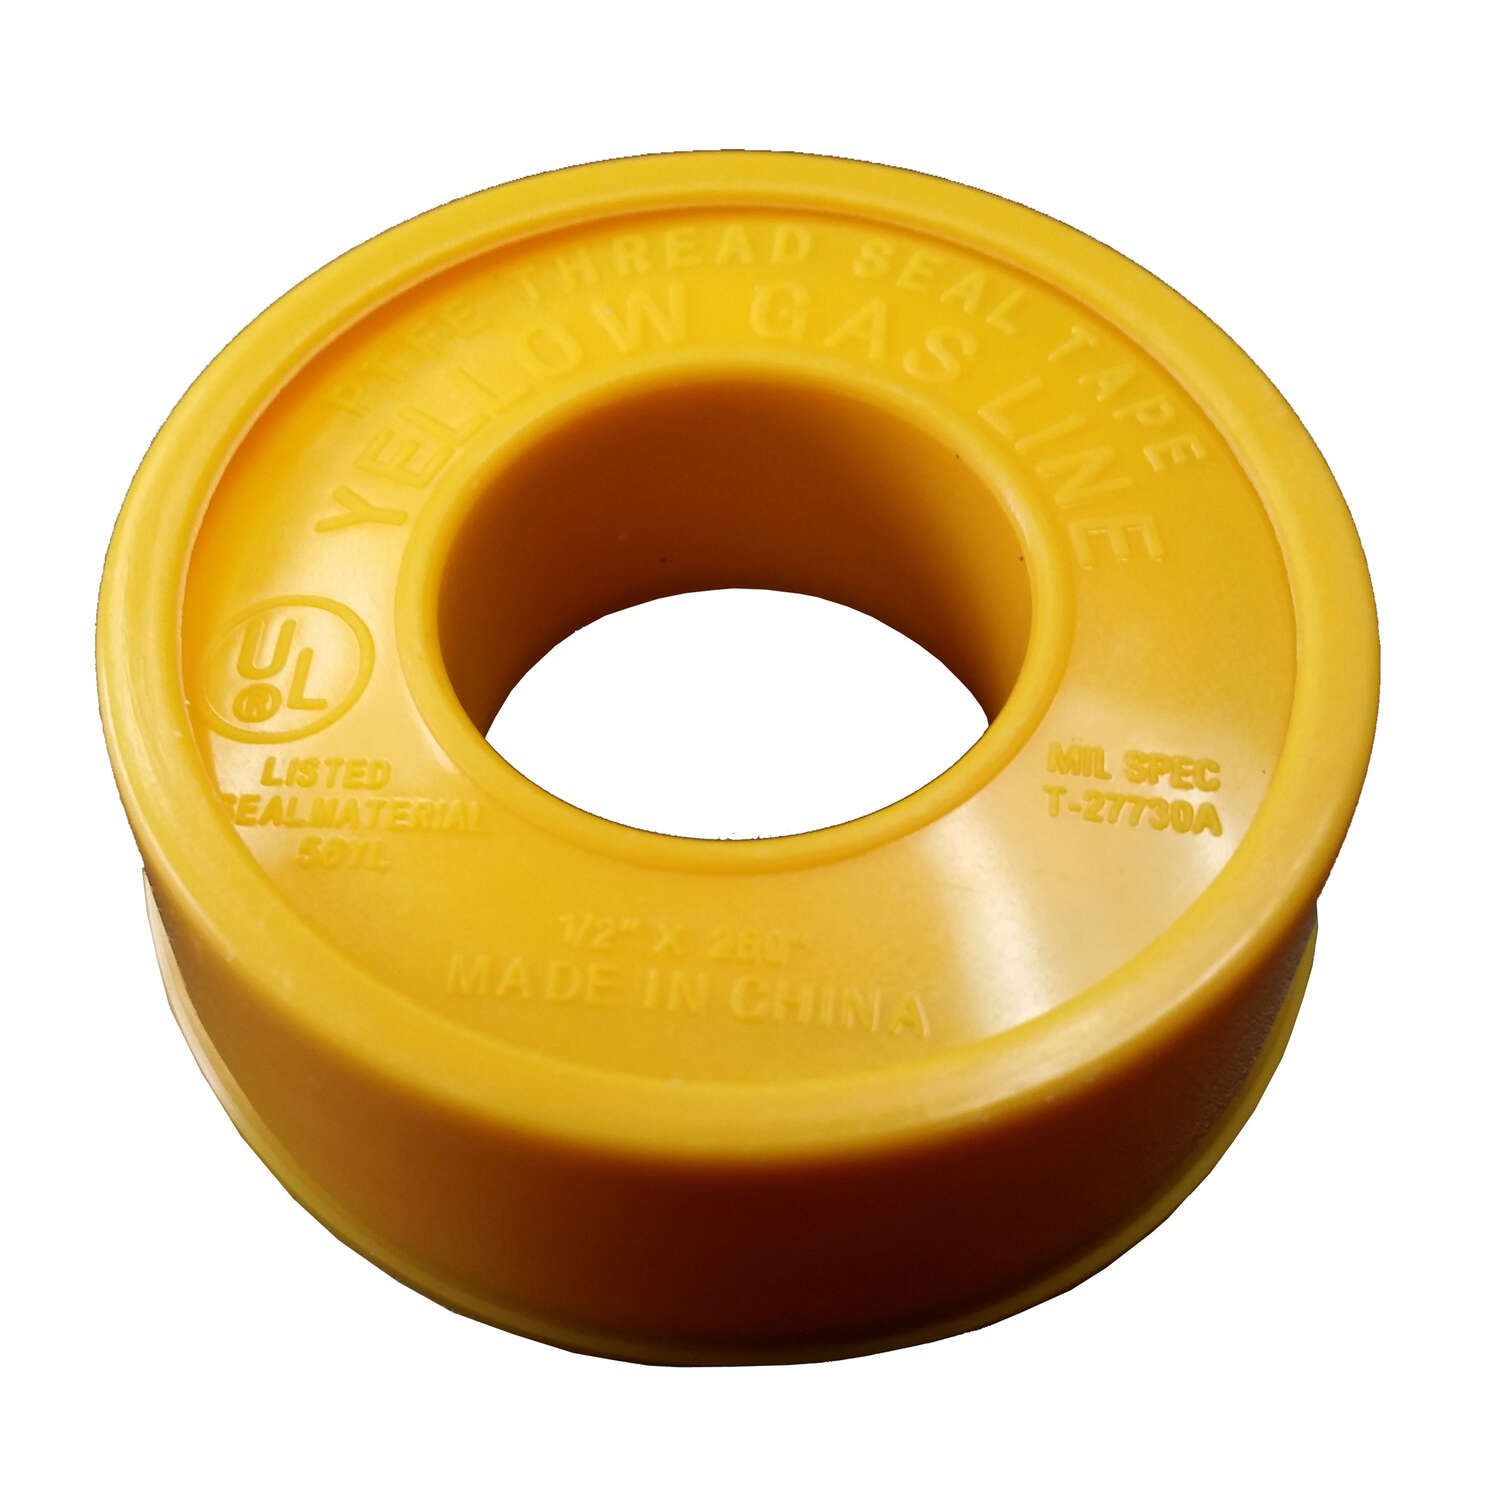 AA Thread Seal  Yellow  260 in. L x 1/2 in. W Thread Seal Tape  0.1 oz.